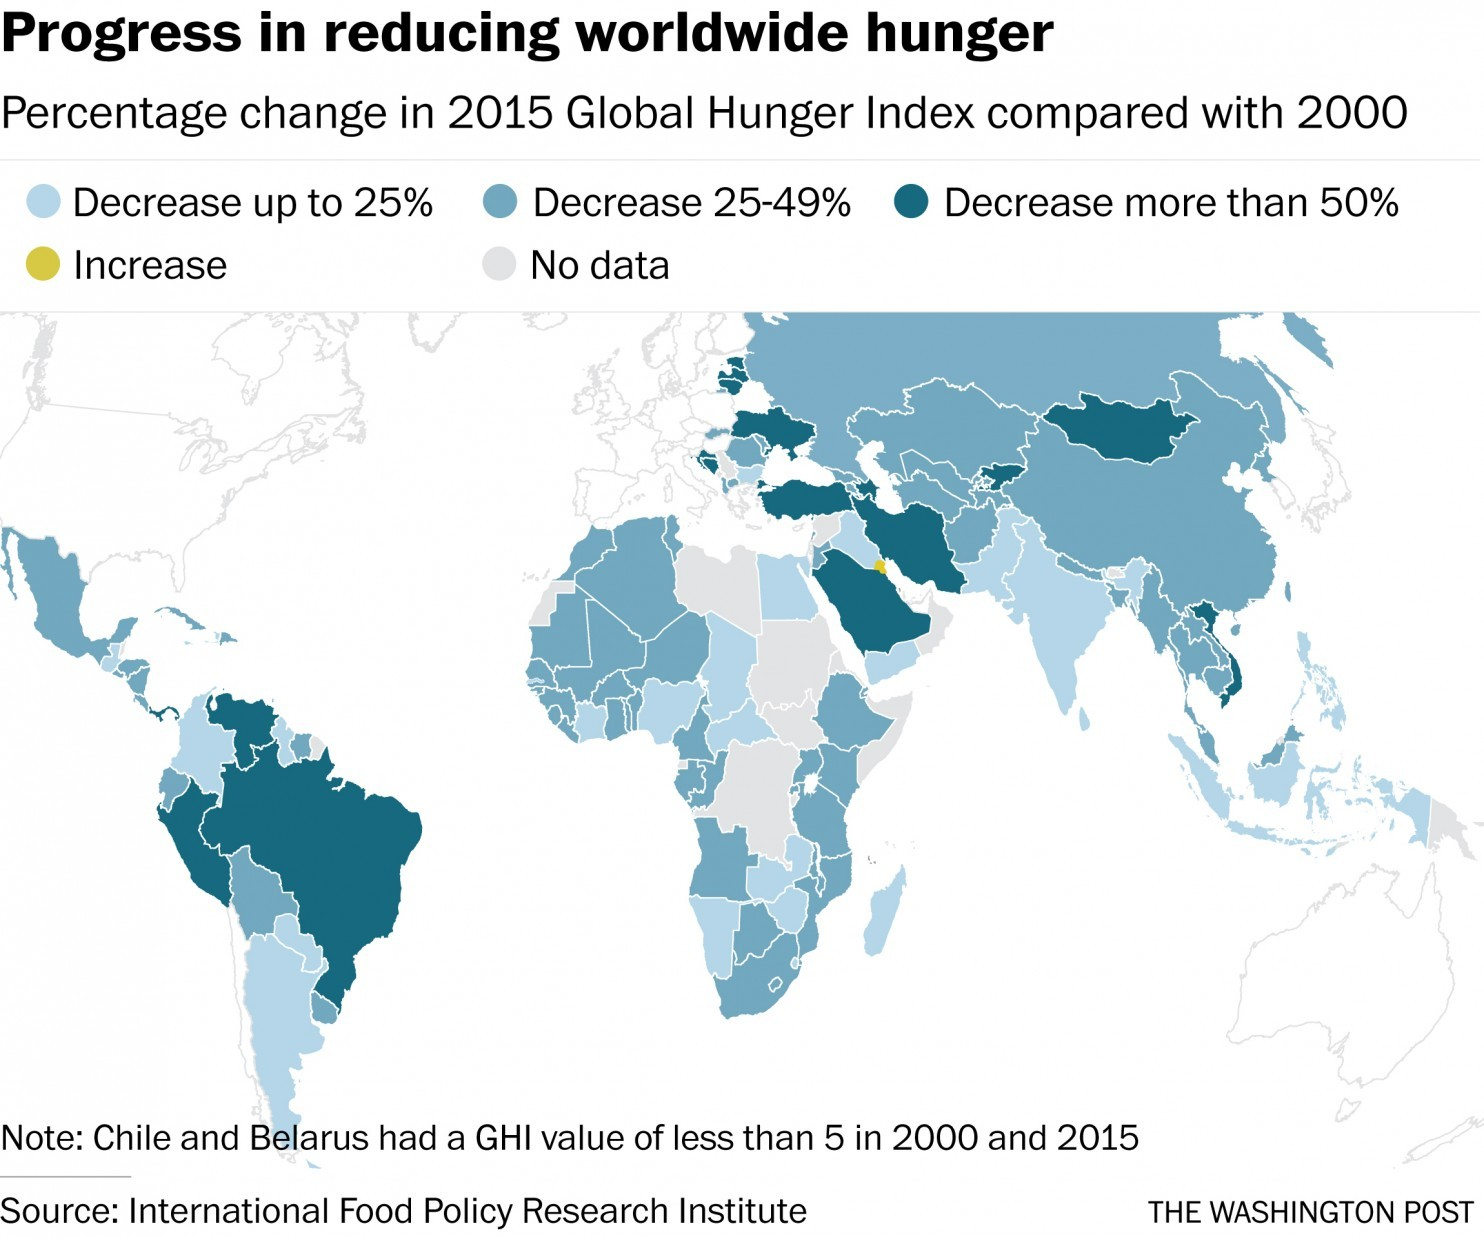 Progress in reducing worldwide hunger